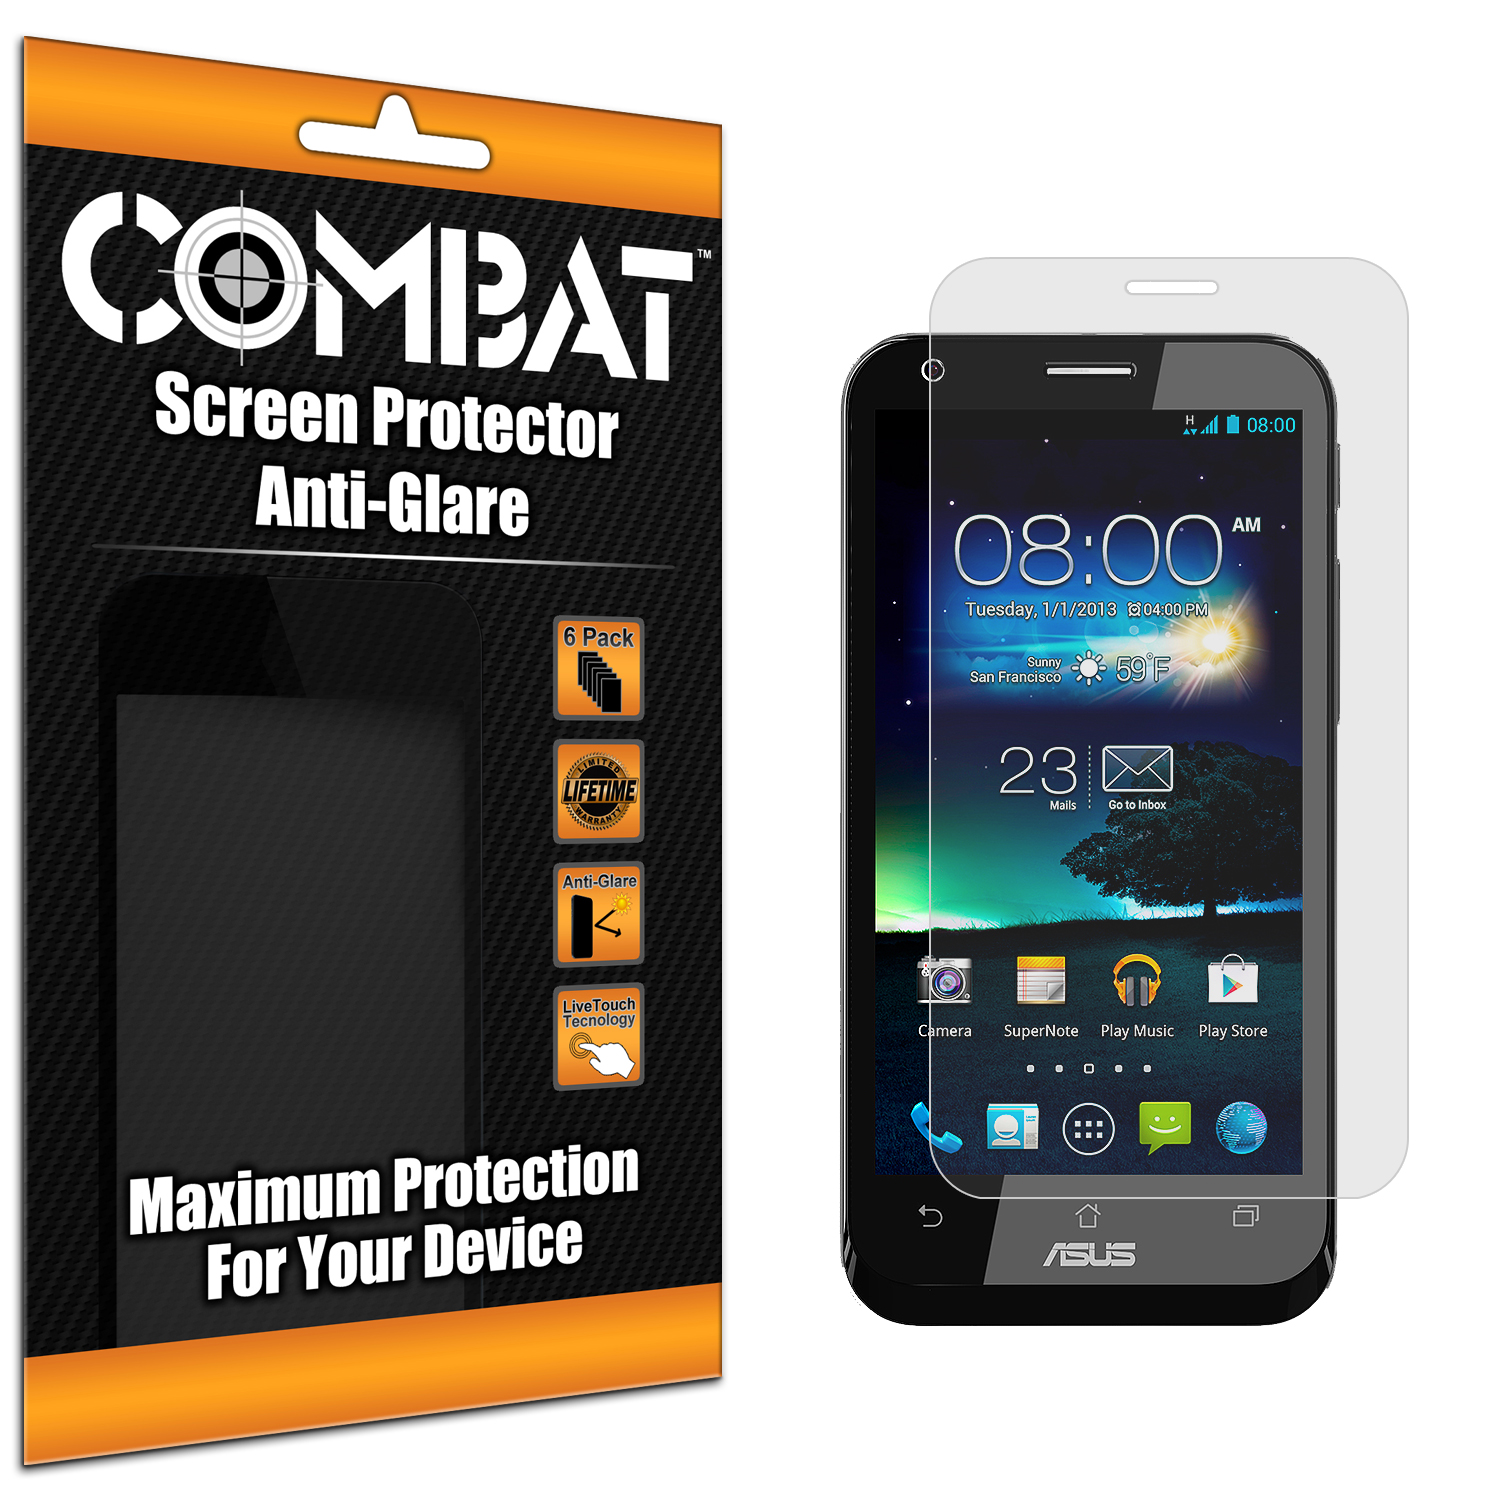 Asus PadFone X Combat 6 Pack Anti-Glare Matte Screen Protector